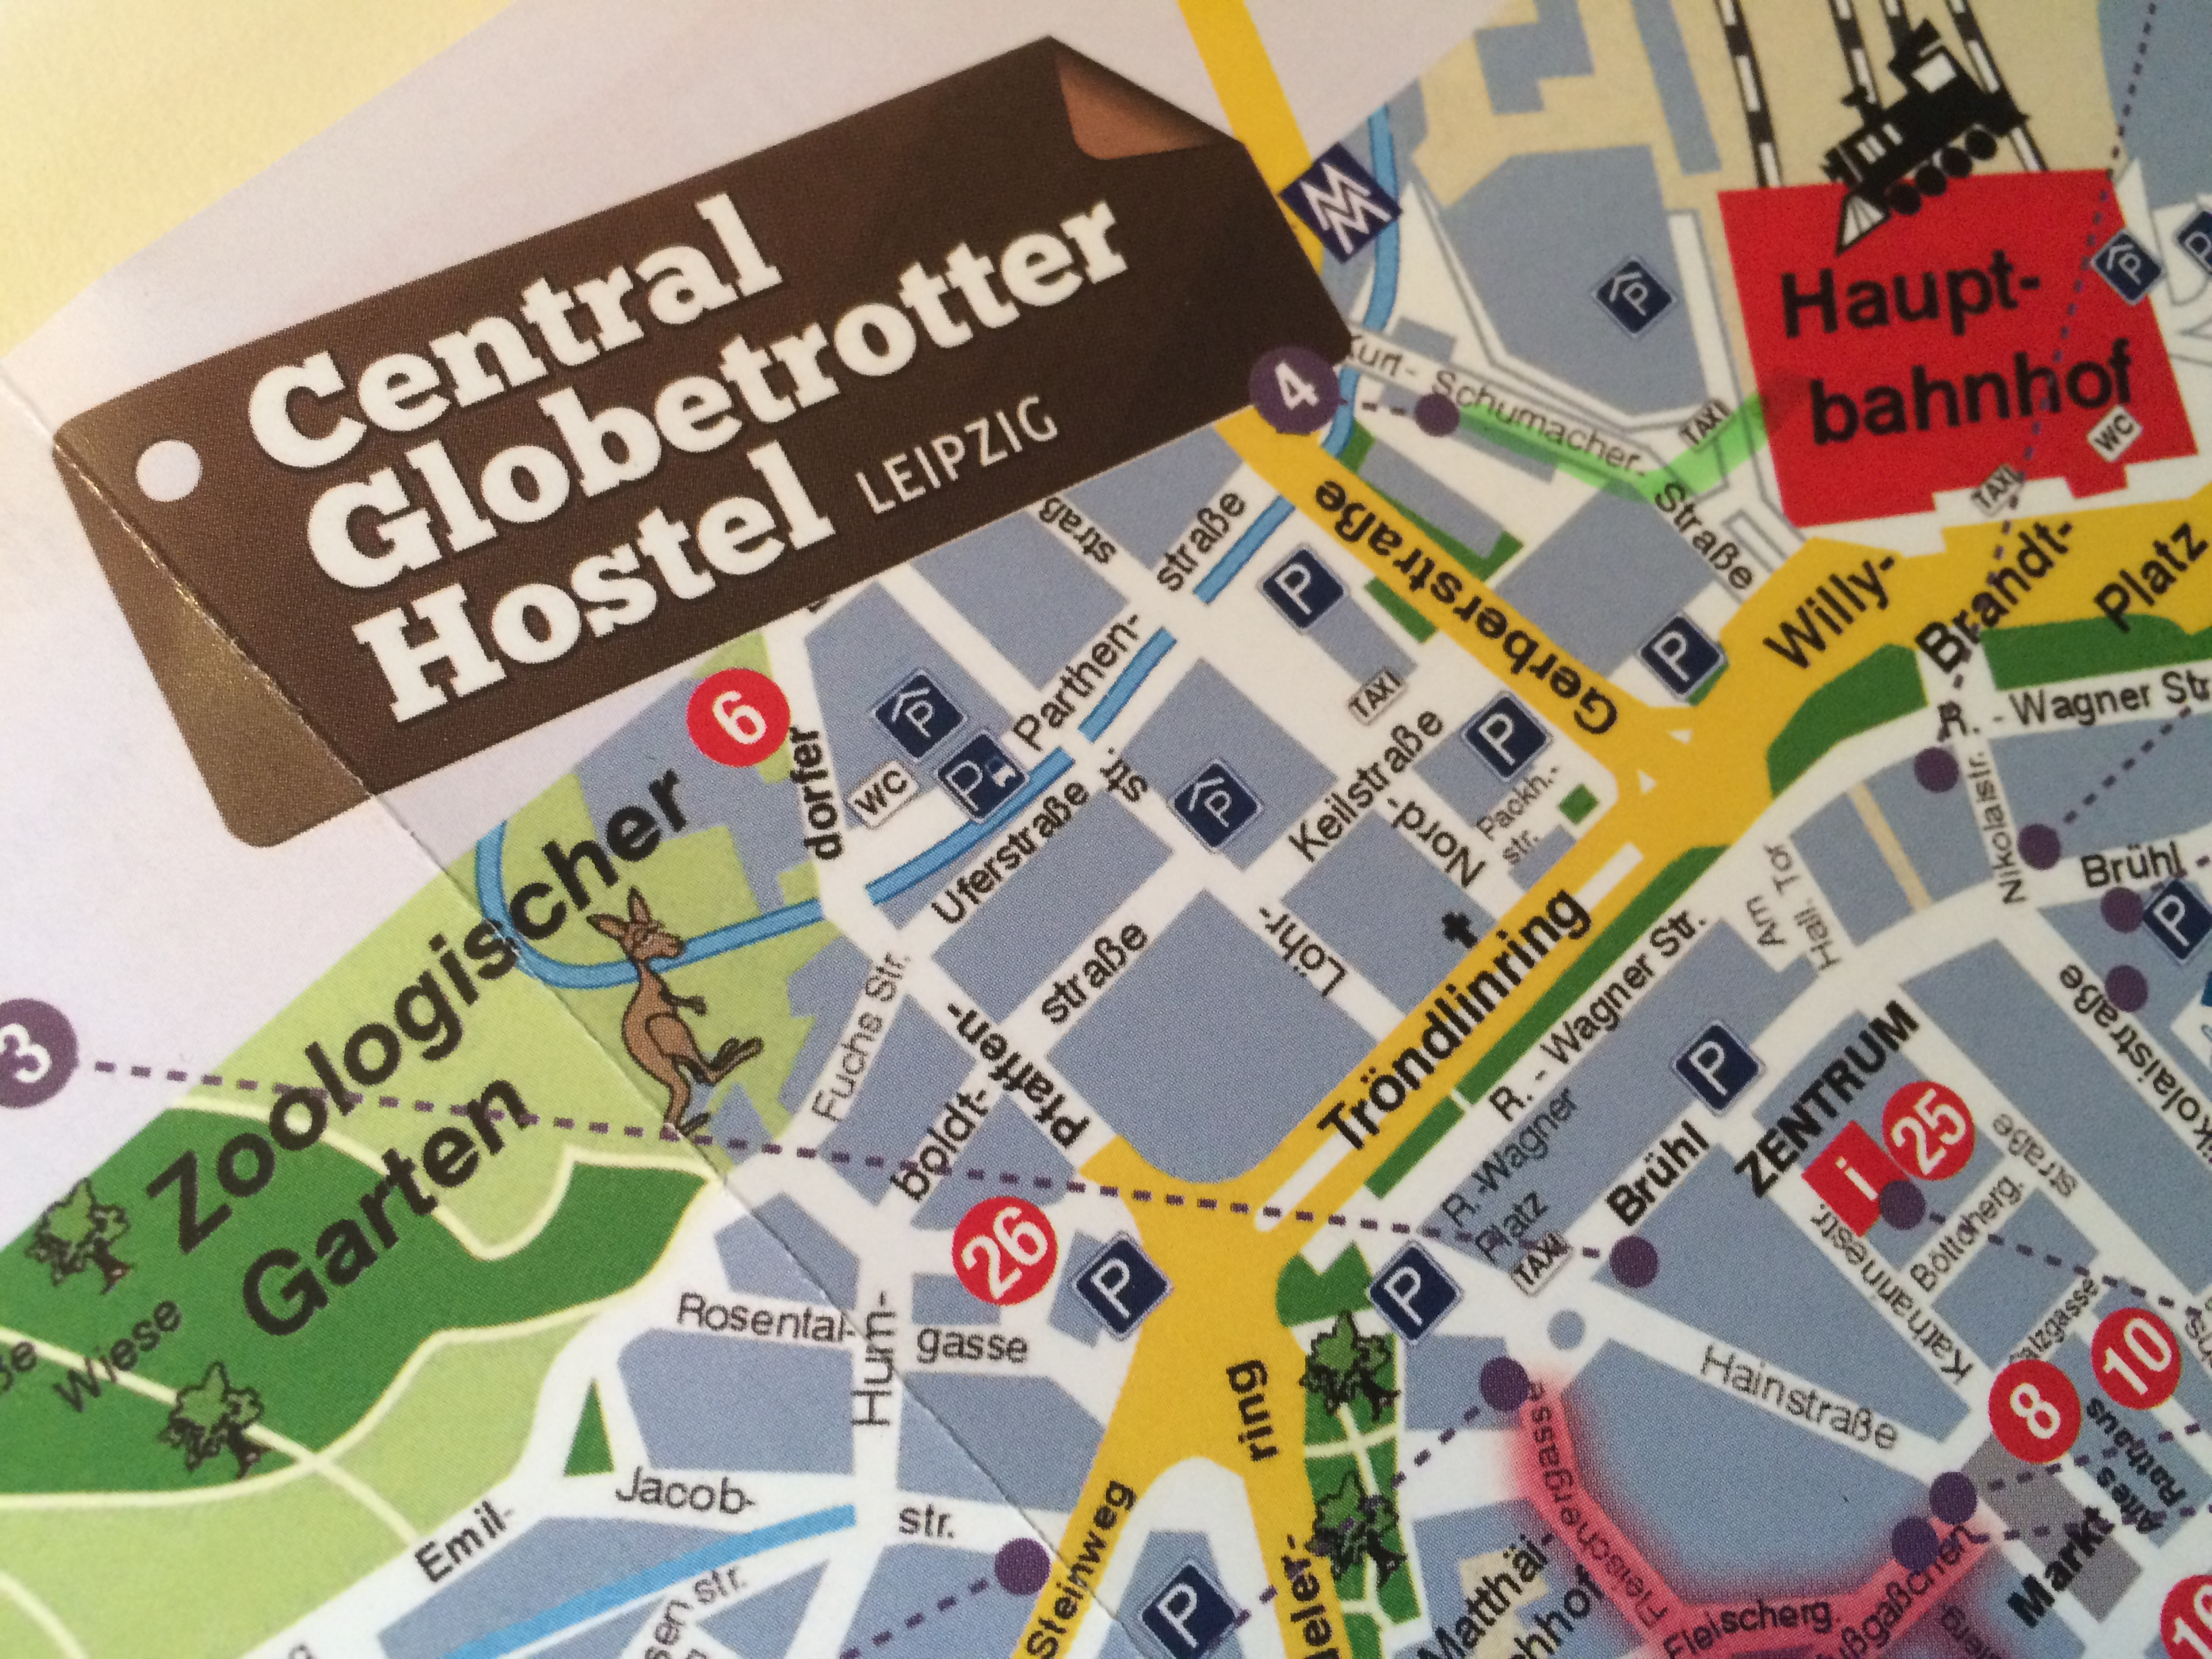 Central Globetrotter Hostel